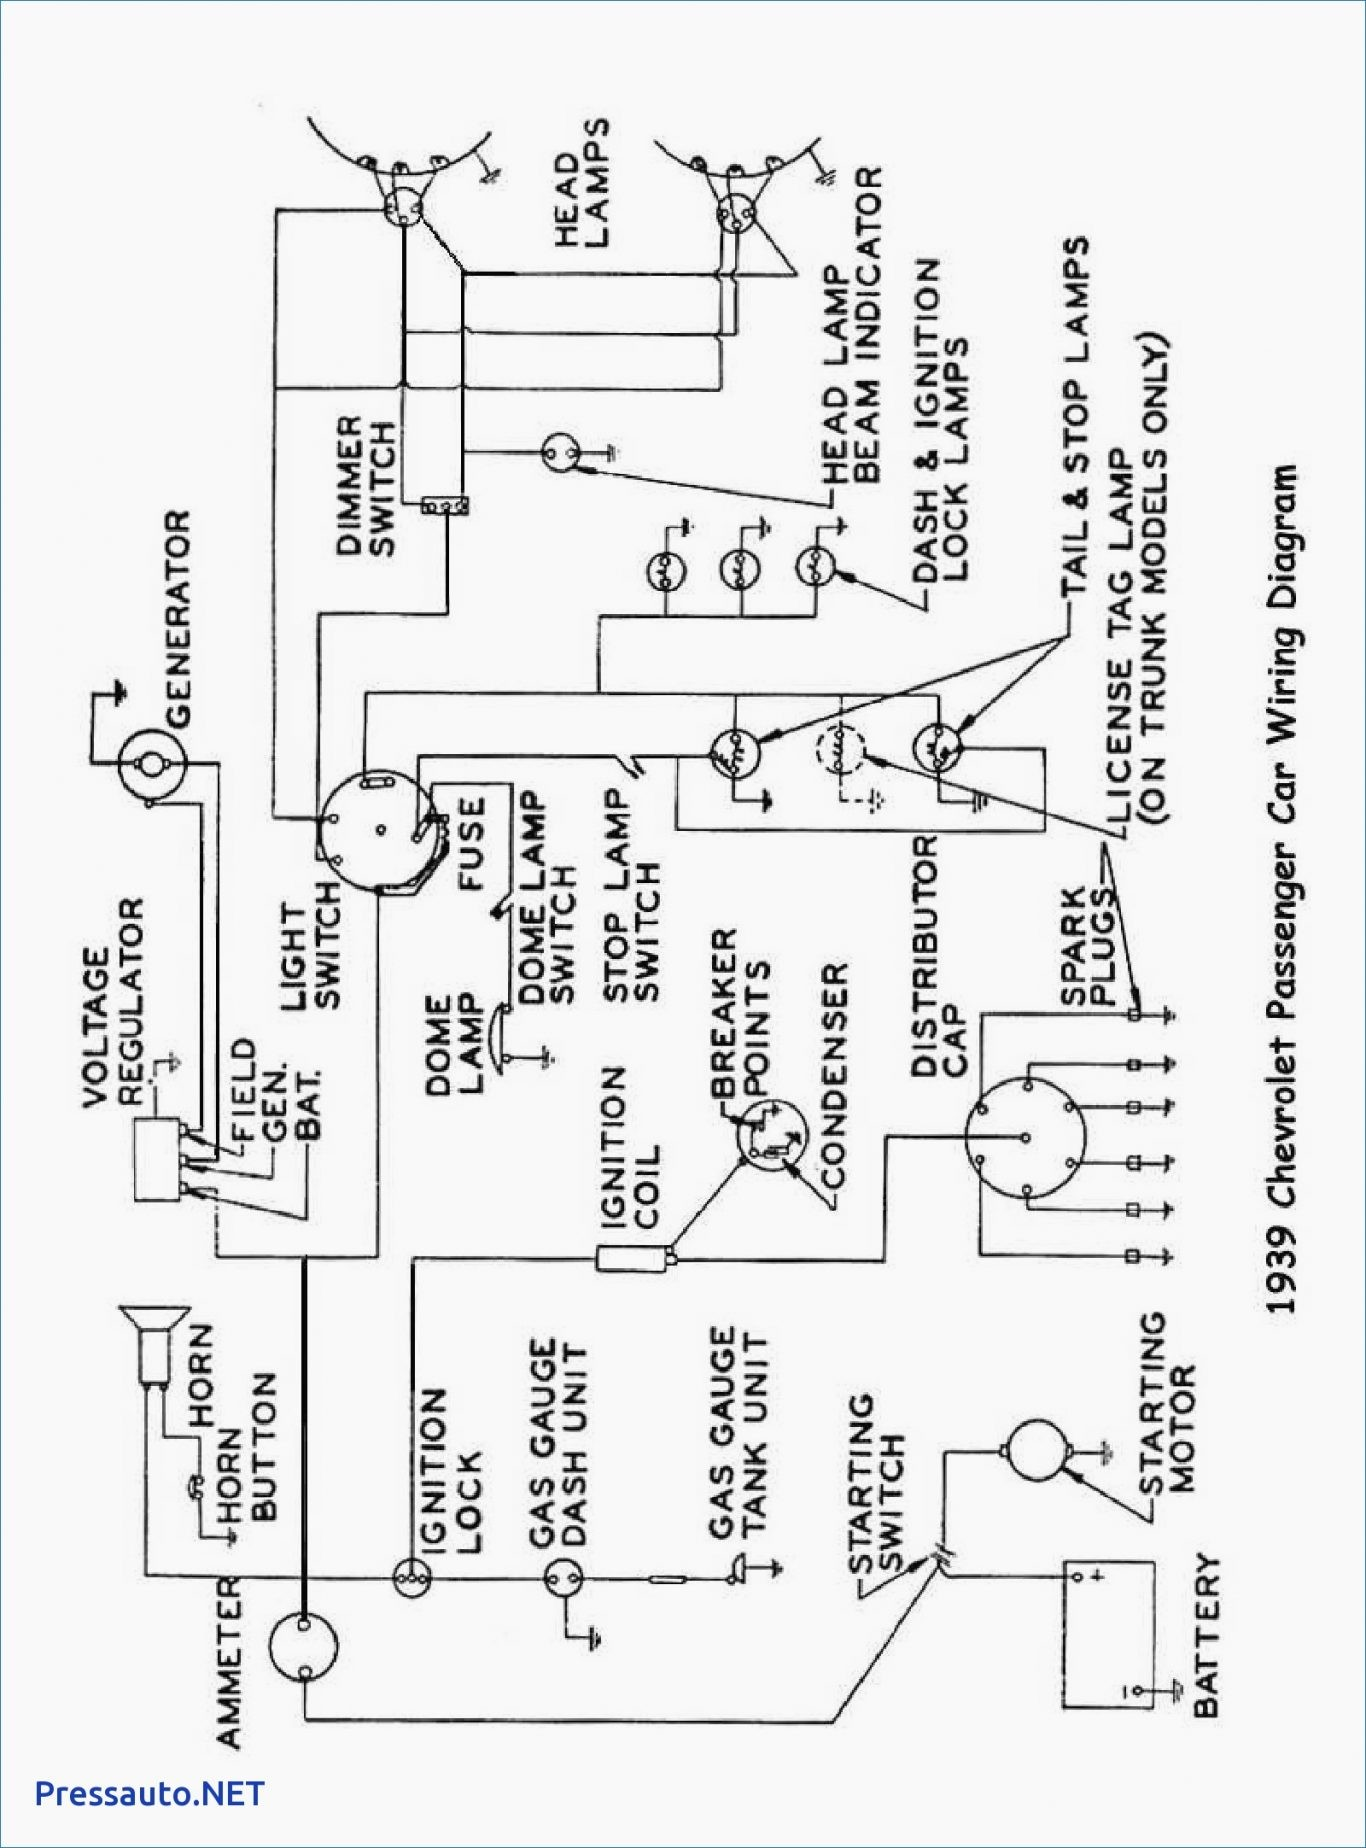 Light Switch Drawing At Free For Personal Use Dimmer Diagram 1366x1848 Wiring 1 Gang Best Of Way